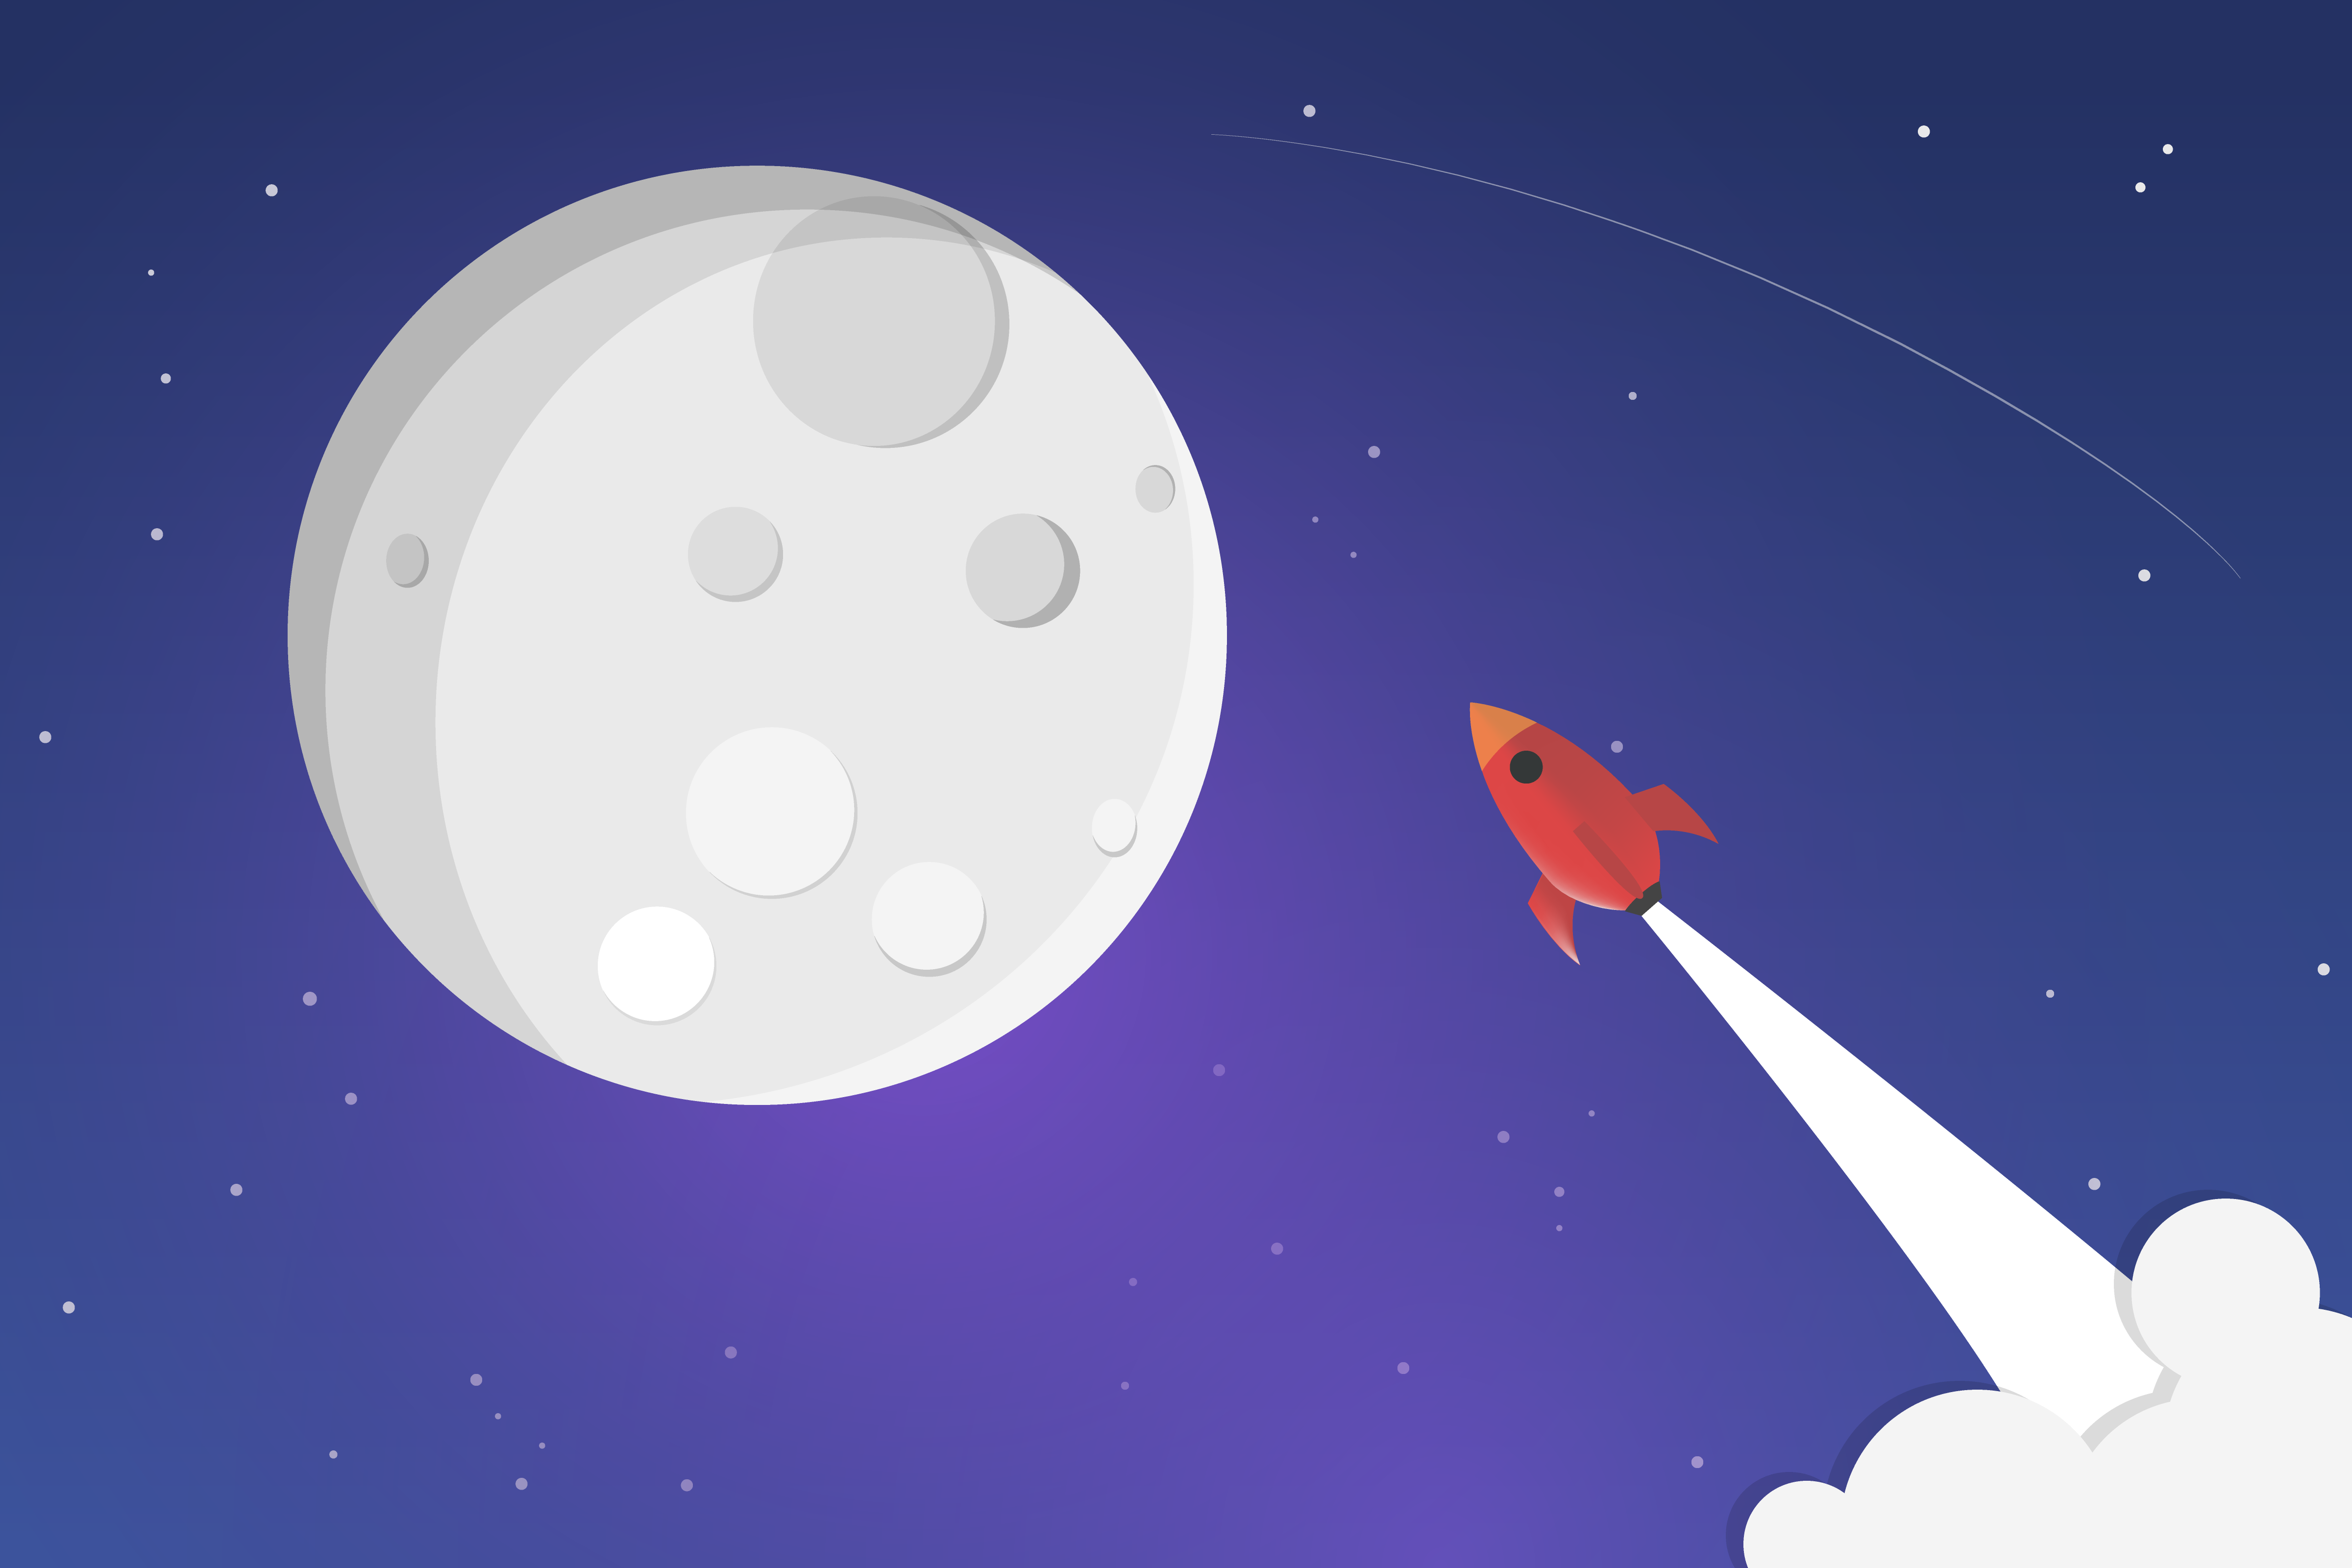 rocket ship to the moon by sarah thomson dribbble